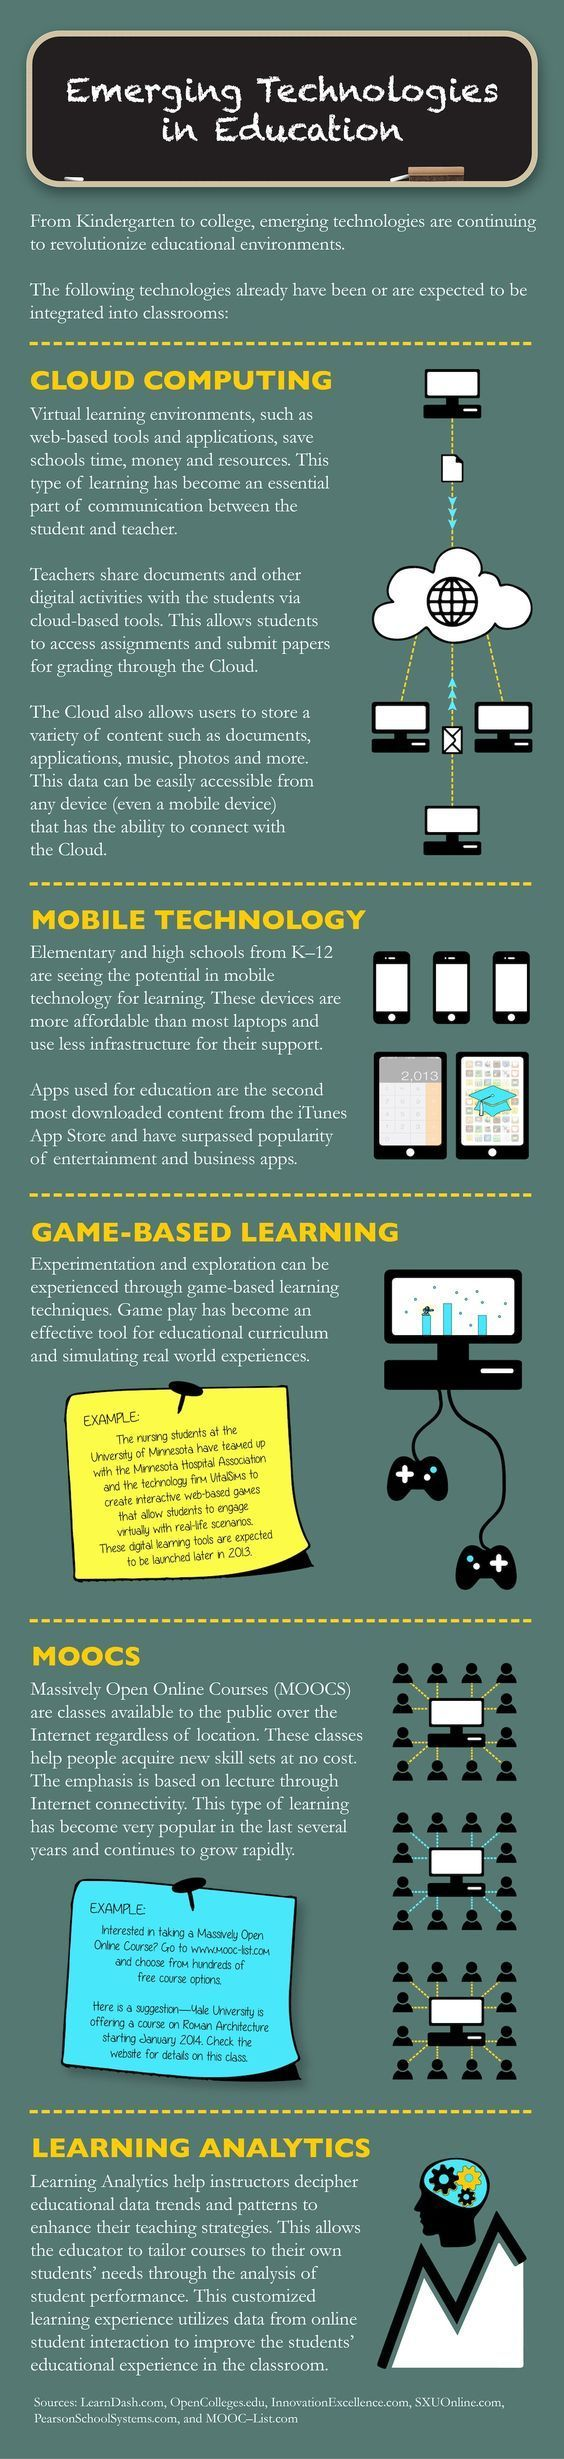 Top 5 emerging education technology infographics